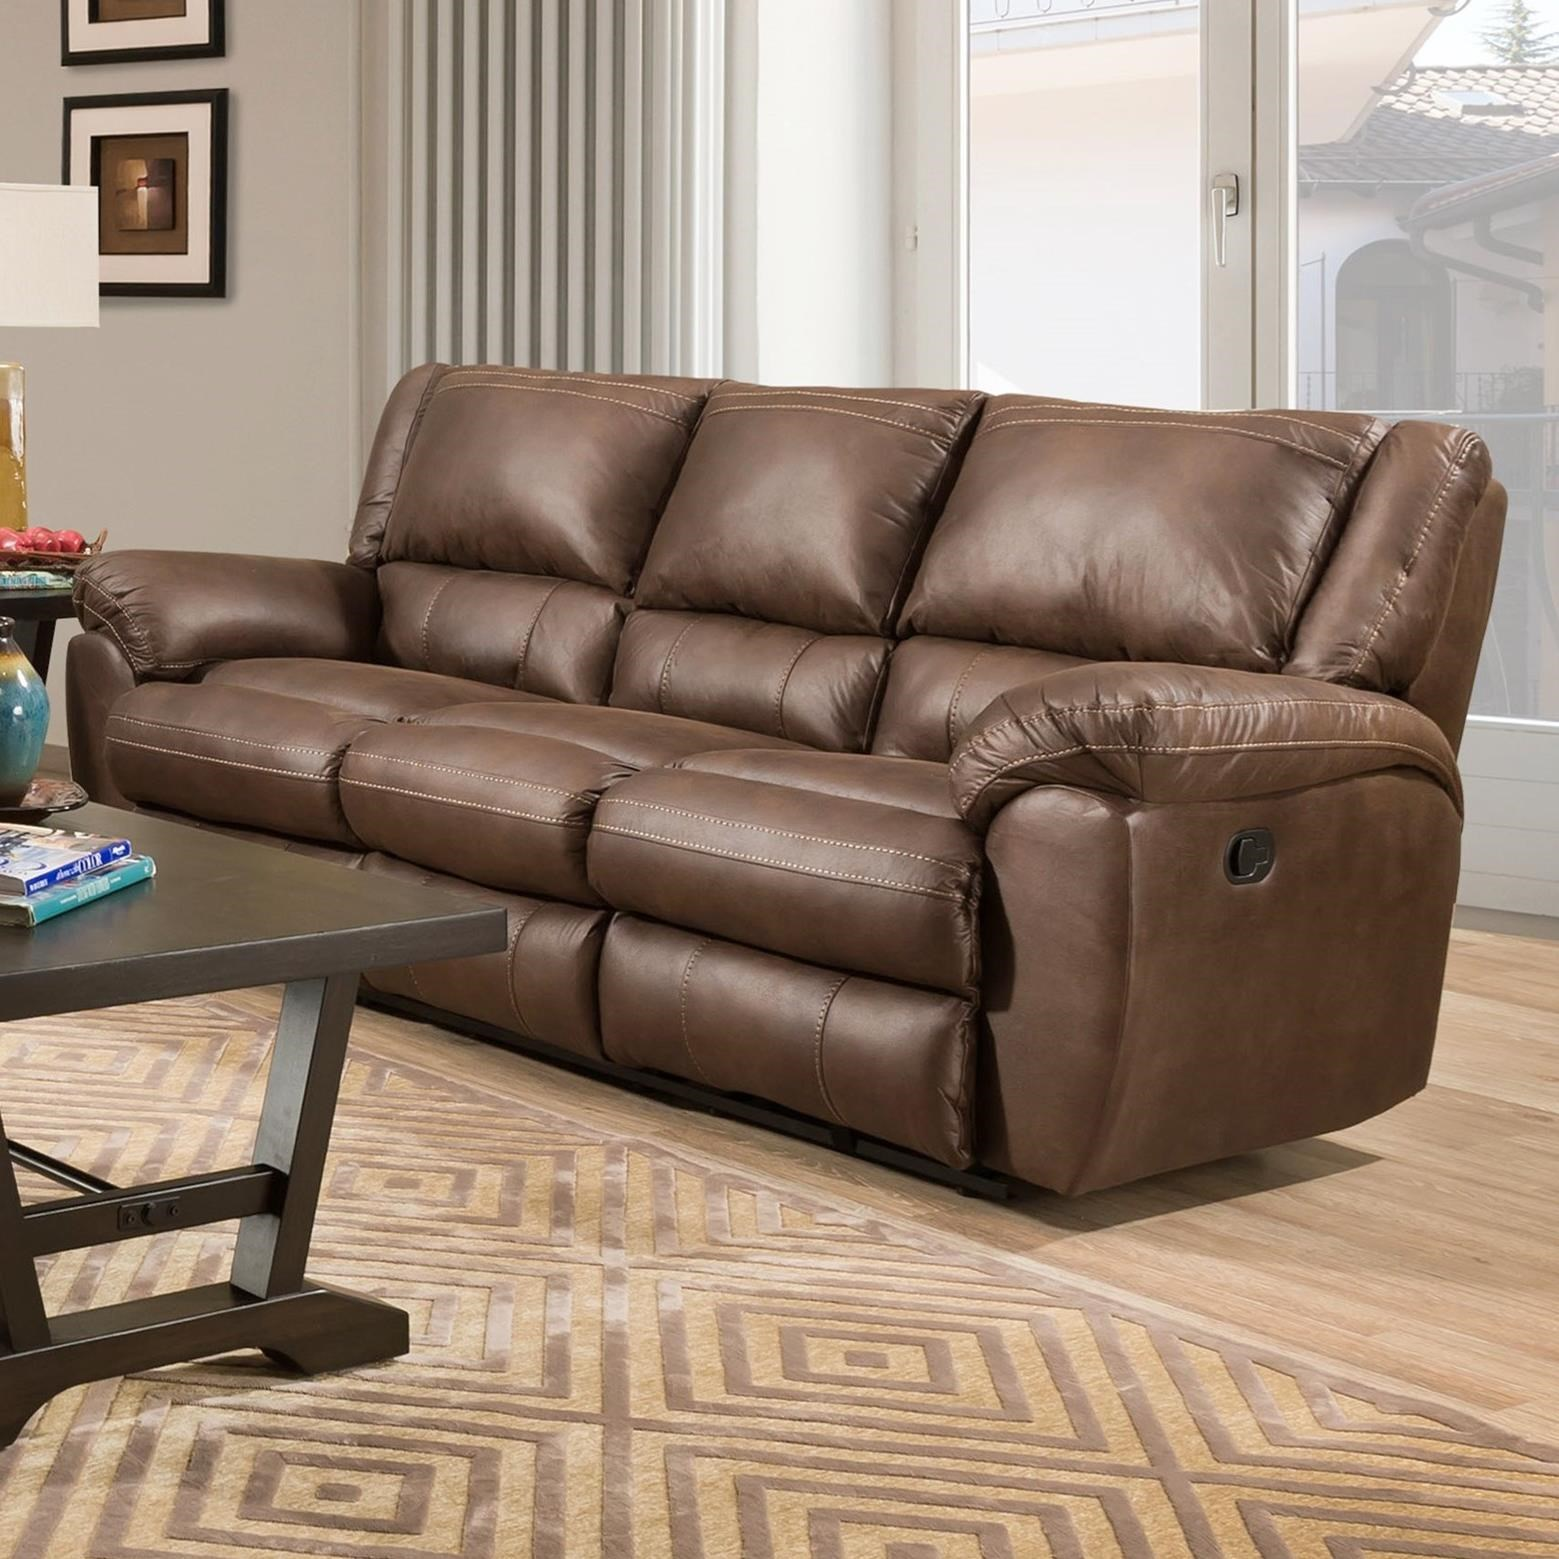 50433BR Double Motion Sofa by United Furniture Industries at Dream Home Interiors